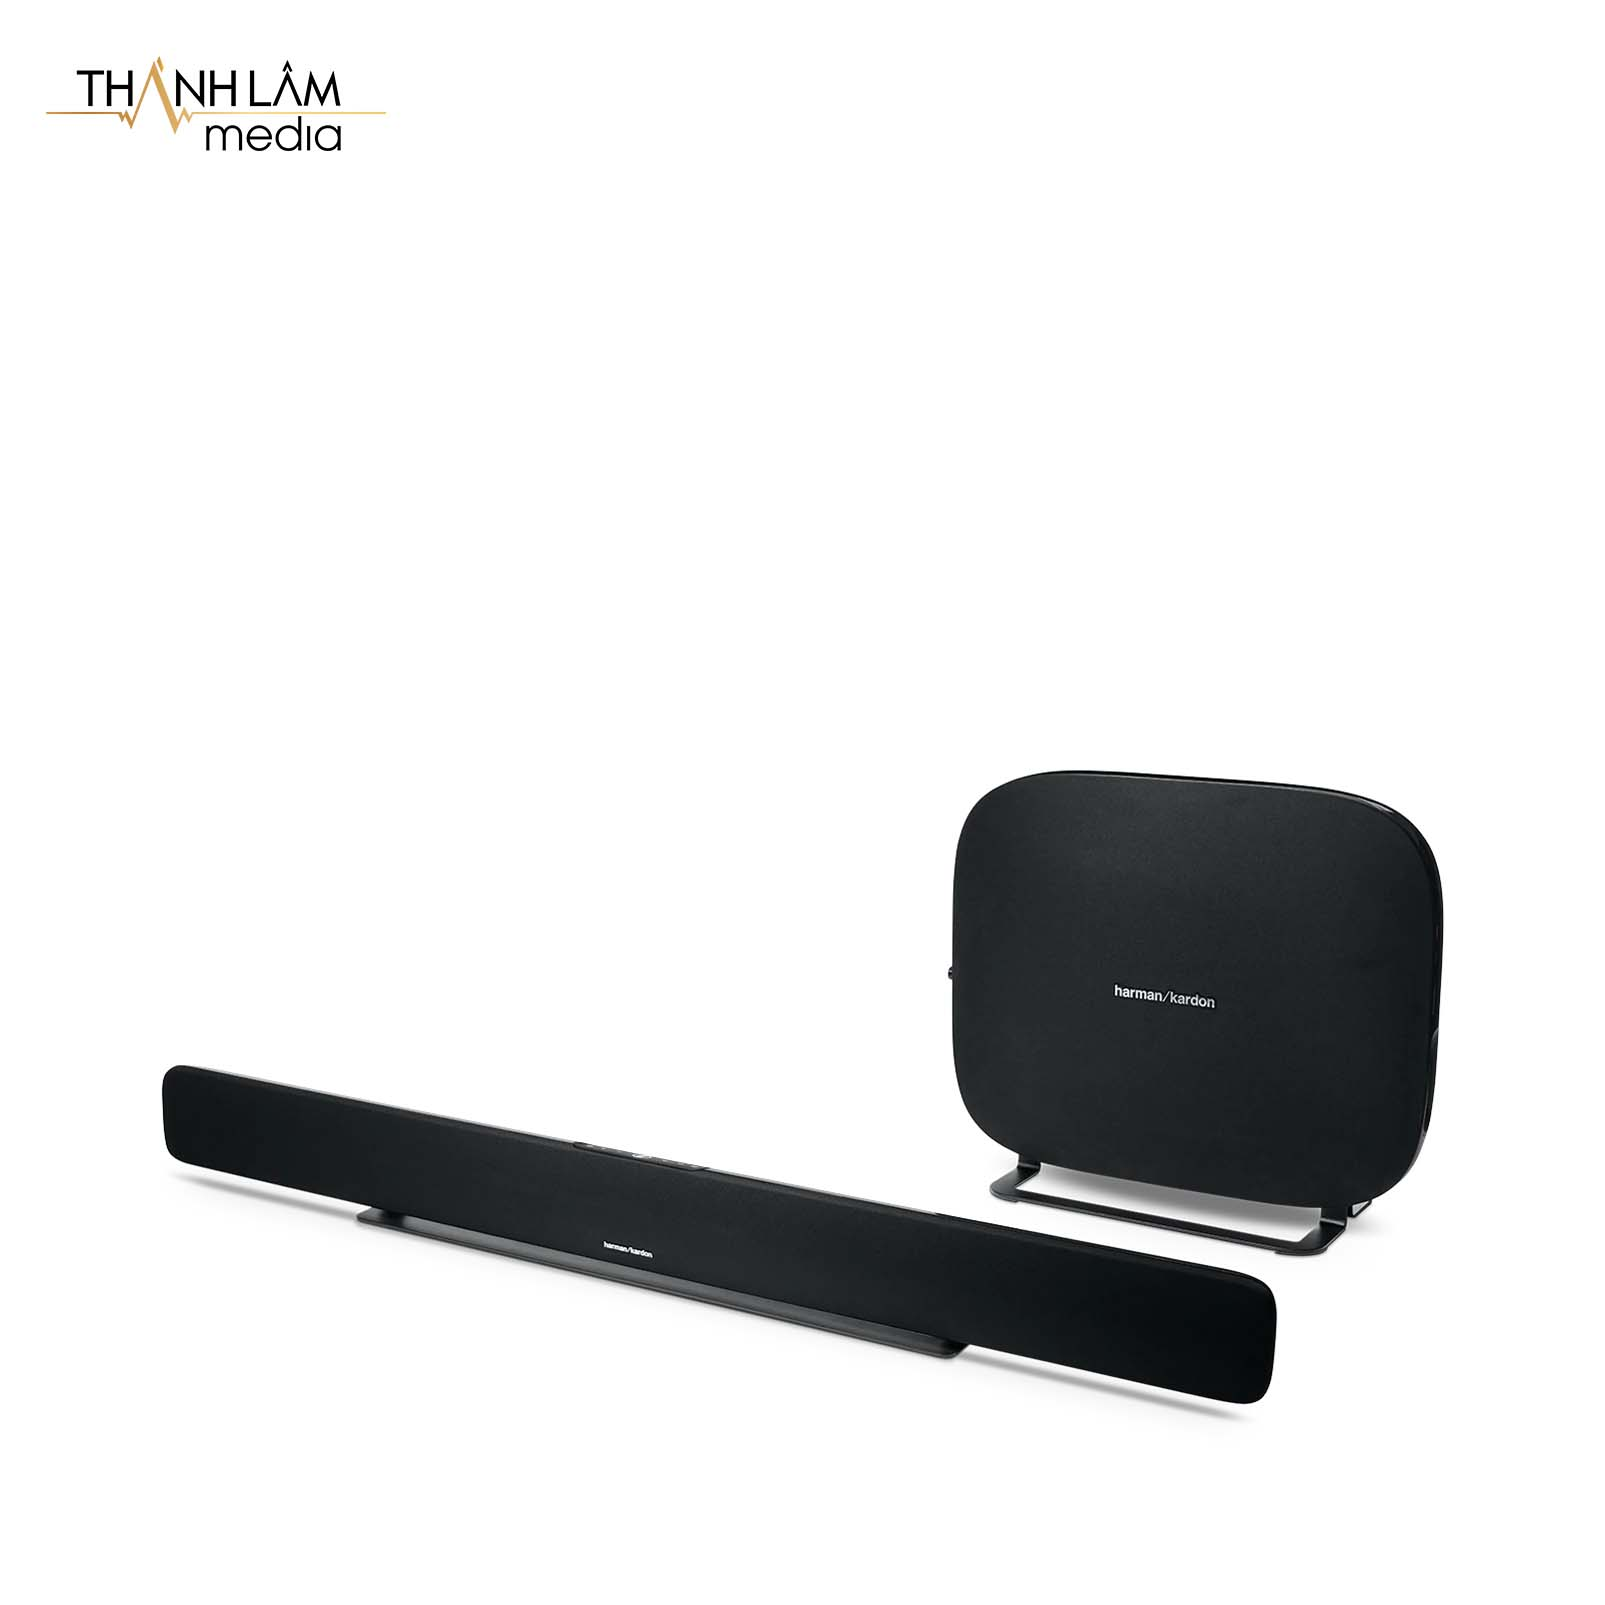 Loa-Harman-Kardon-Omni-Bar-Plus-Den-8